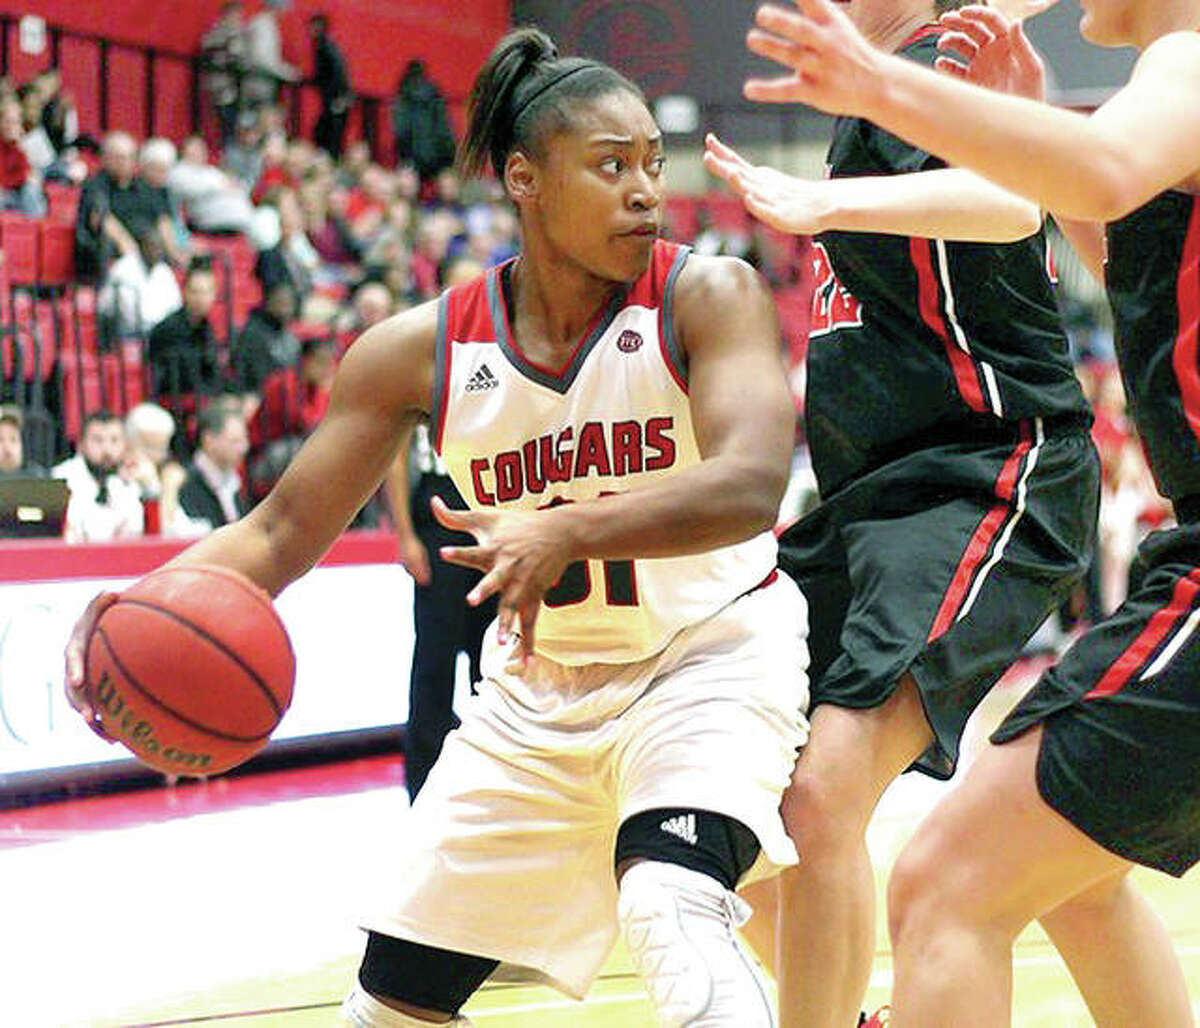 SIUE's Donshel Beck scored 14 points and passed the 1,000-career point mark in the Cougars' loss at Nebraska Saturday.